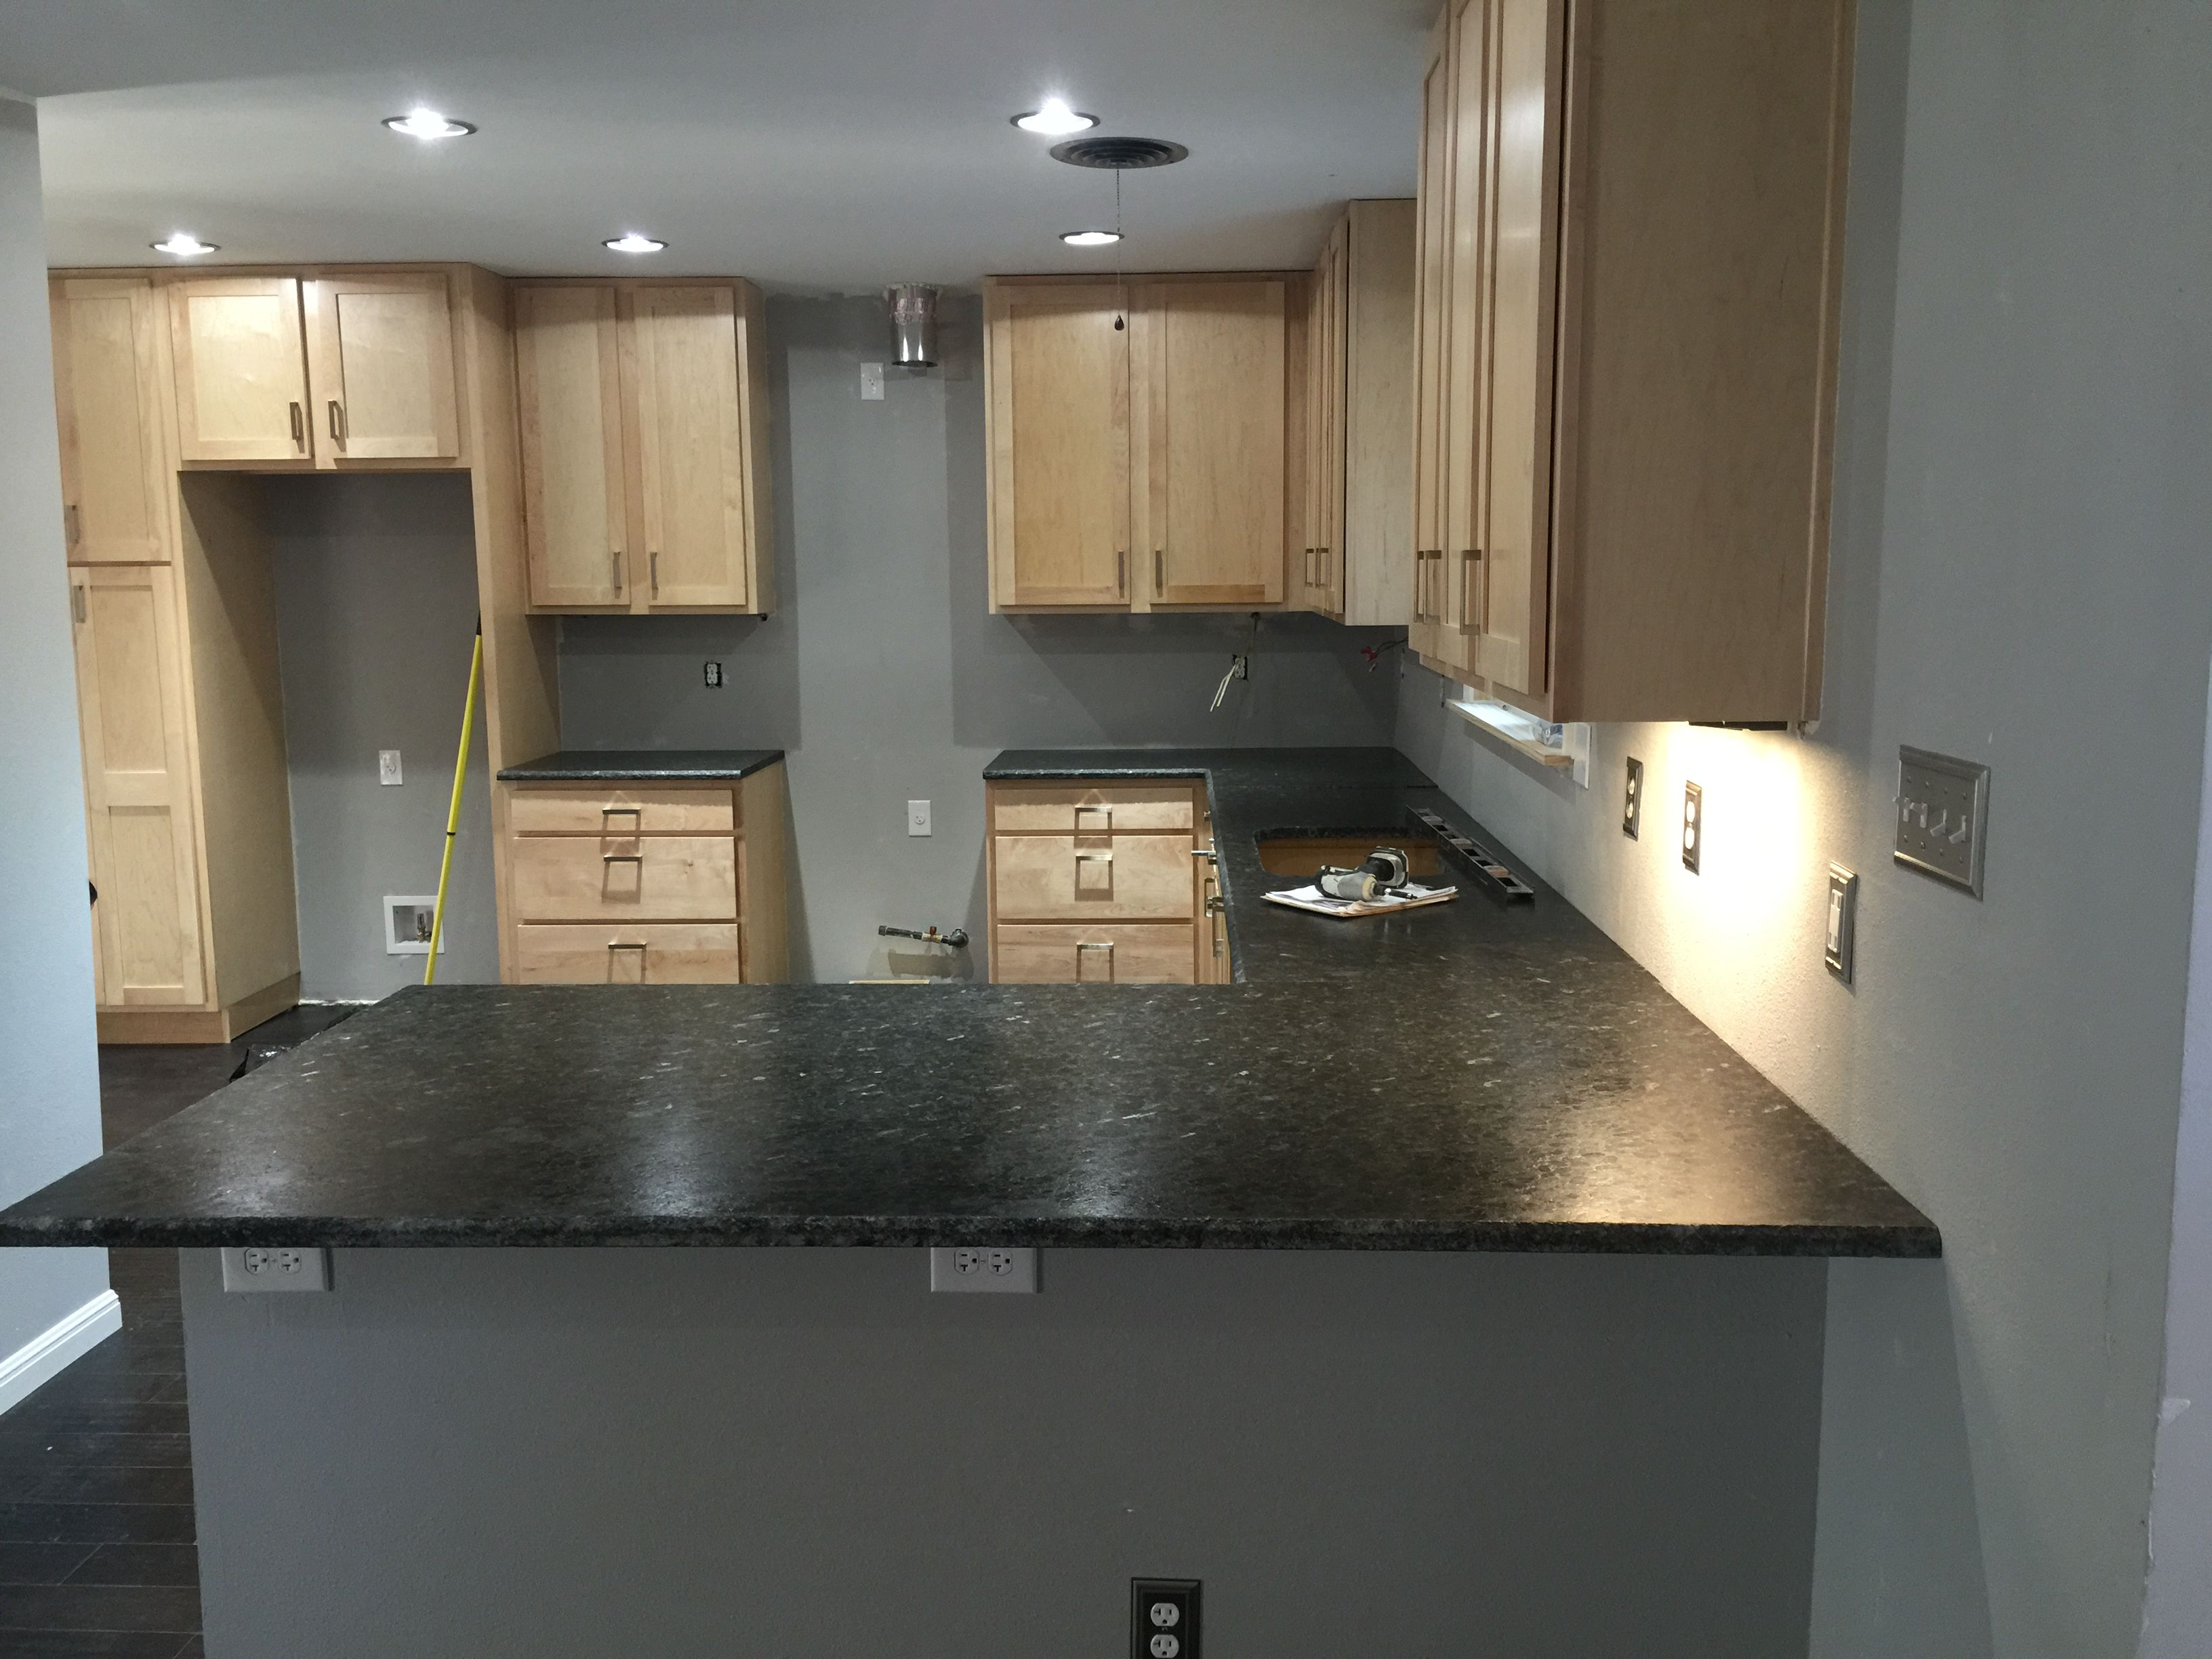 kitchen columbus in inc countertops rens company oh welcome kitchens renaissance granite remodeling design and countertop ohio